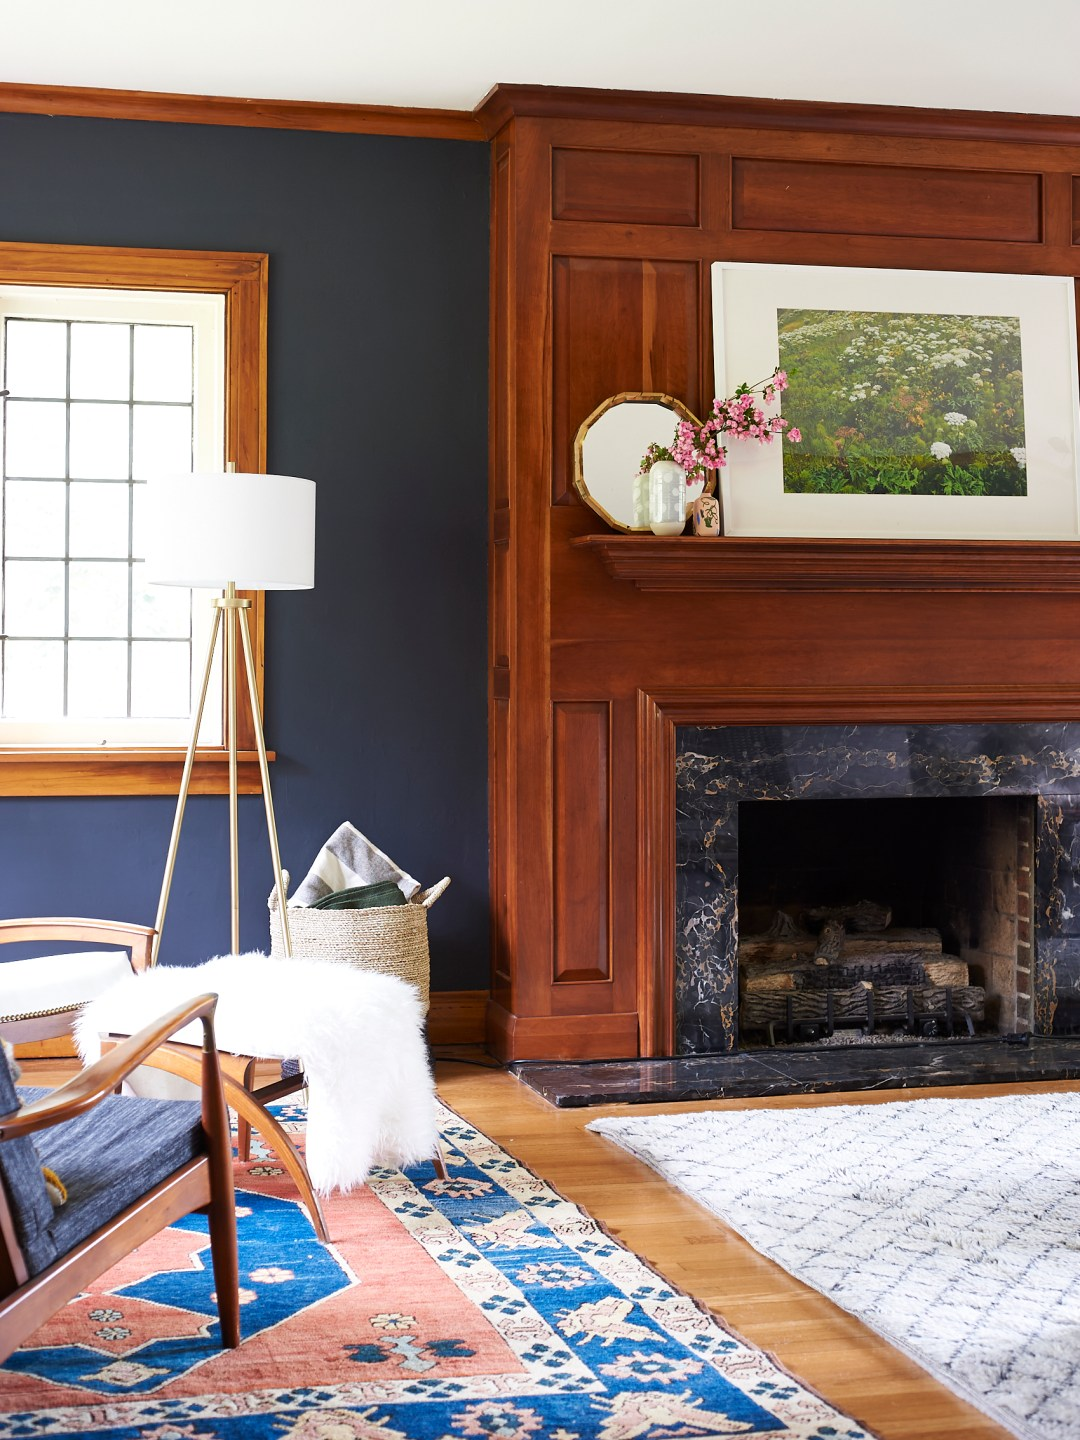 Traditional rug in living room with wood panel fireplace surround